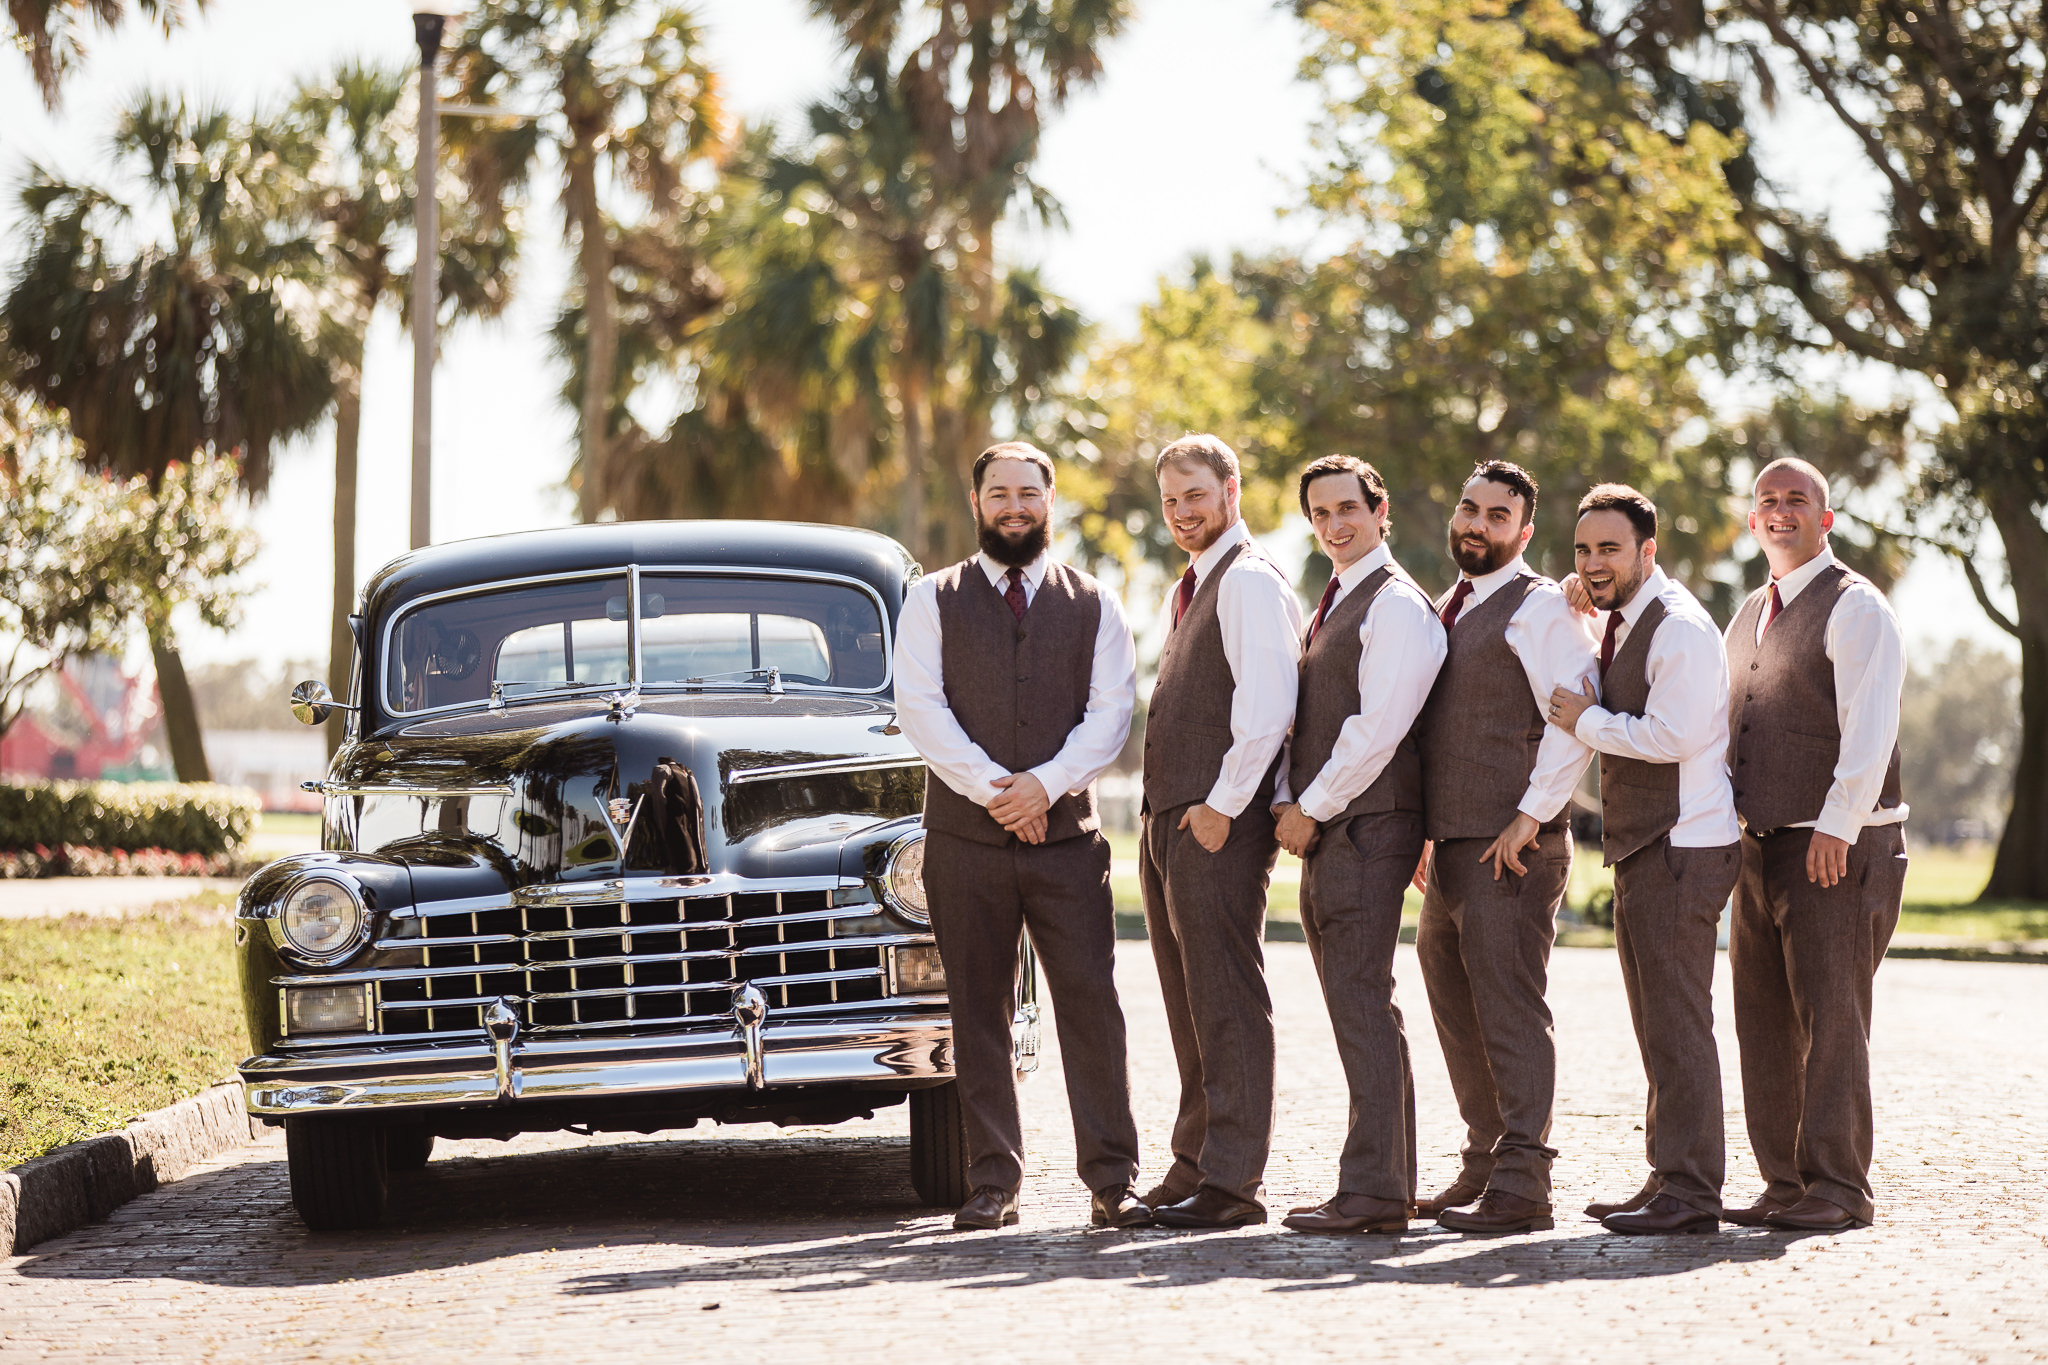 Grooms standing with groomsmen and a classic car before a wedding at Vinoy Park in St. Petersburg, Florida